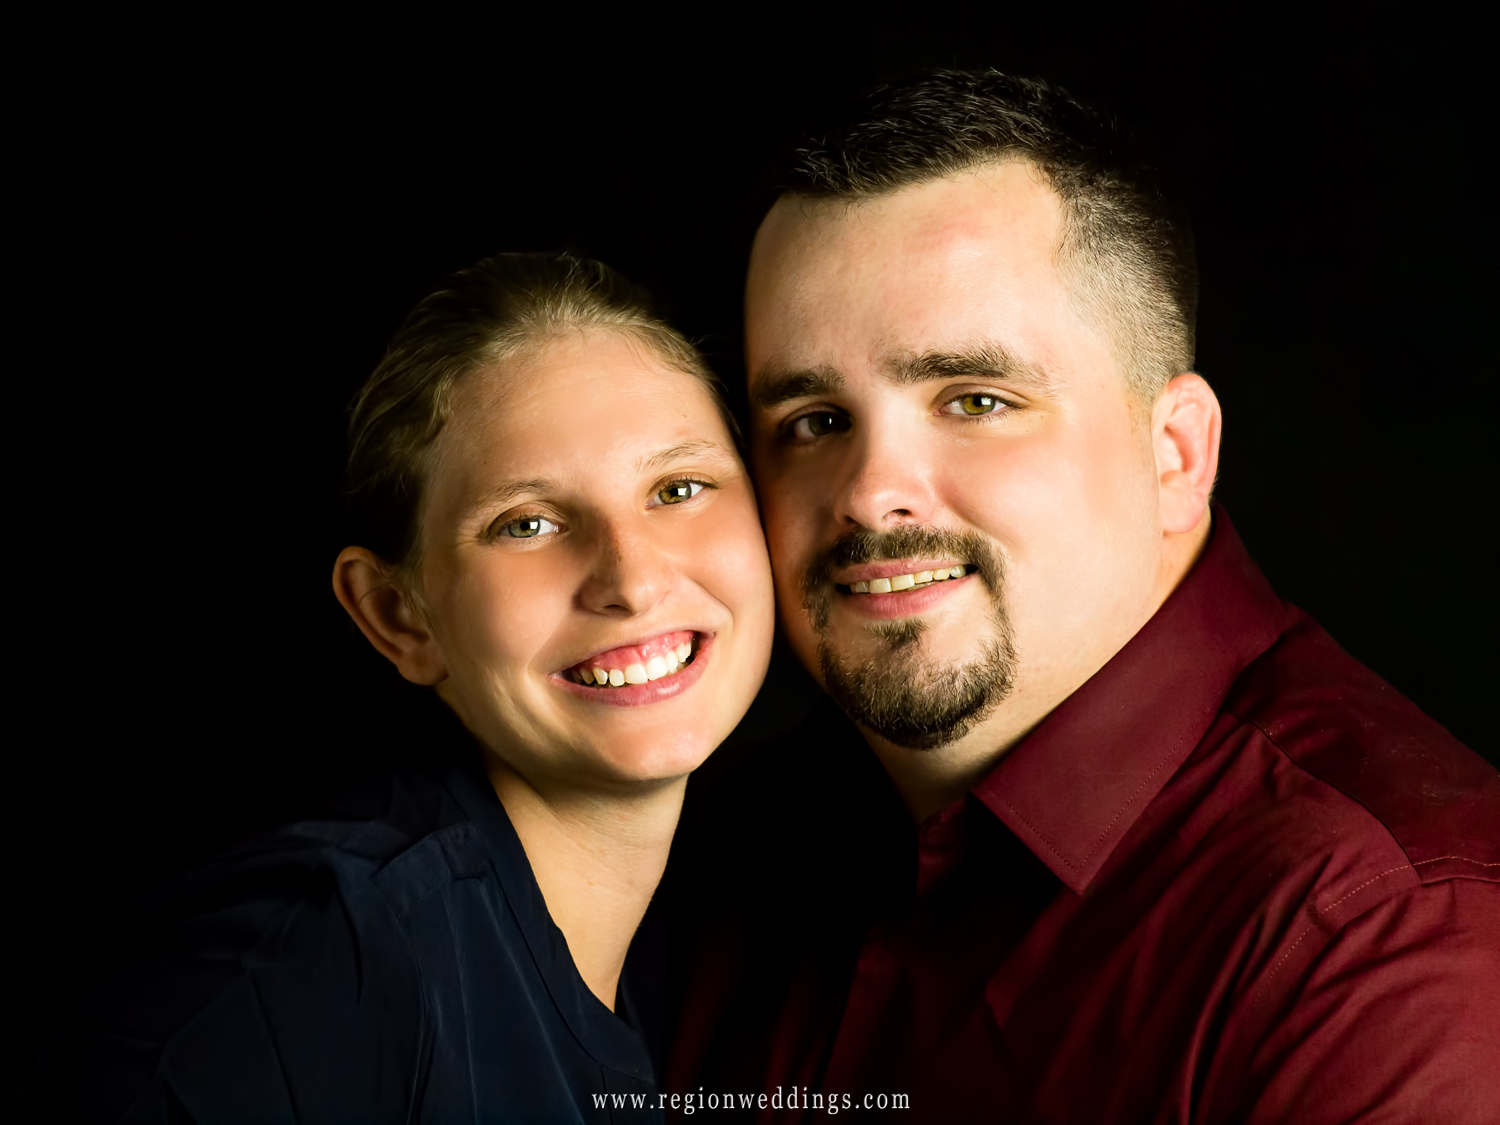 A cute couple poses for an engagement photo in studio.